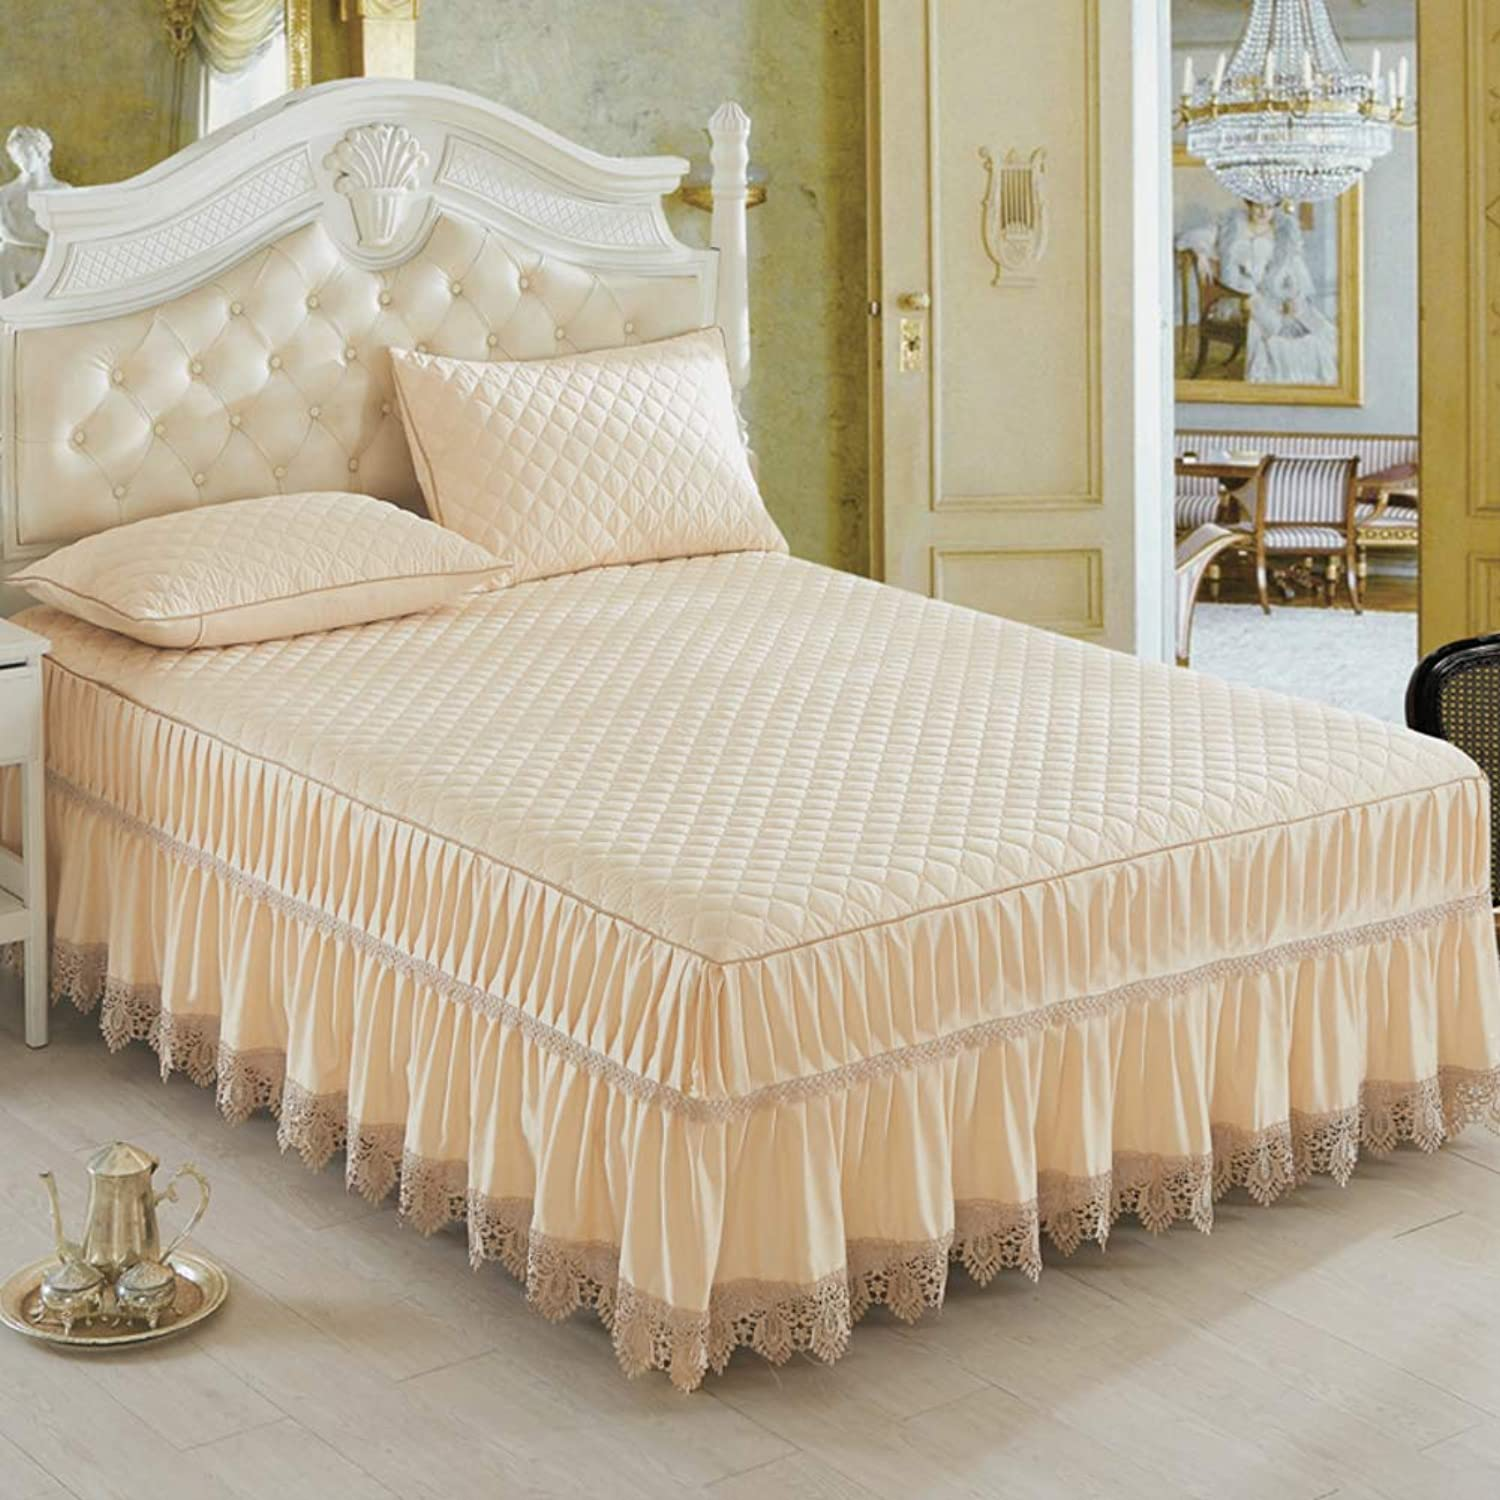 100% Cotton Bed Skirt,Lace Thicked Bed Cover Single Piece Air Conditioning Soft Seat Bed Skirt Elastic Dust Ruffle Easy Fit Wrinkle-F 150x200cm(59x79inch)